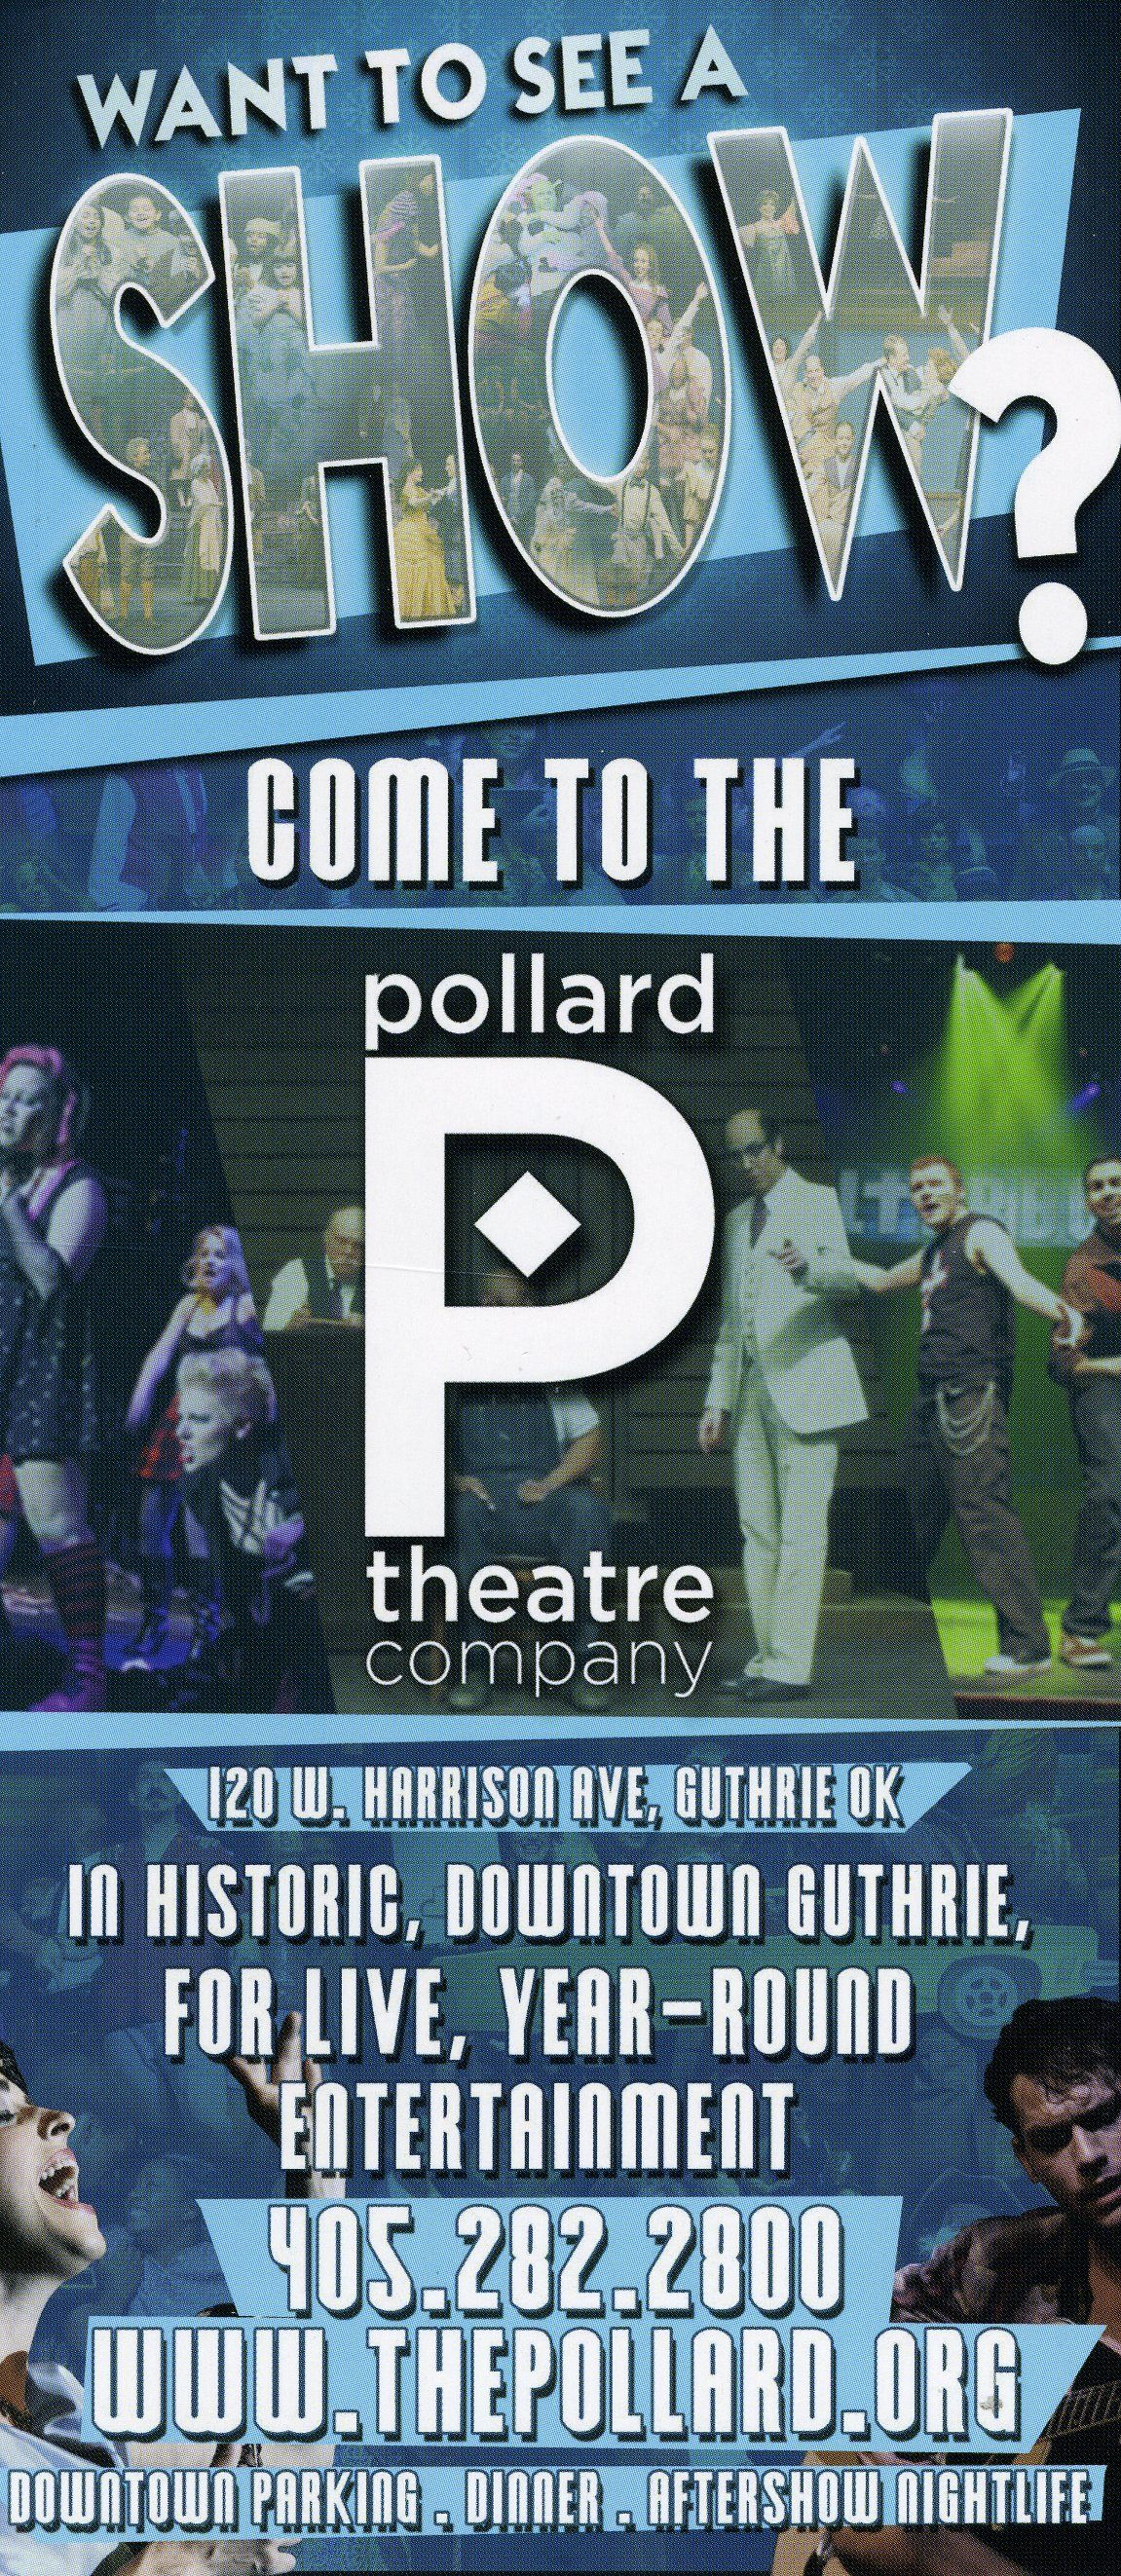 Located in historic downtown Guthrie, the Pollard Theatre